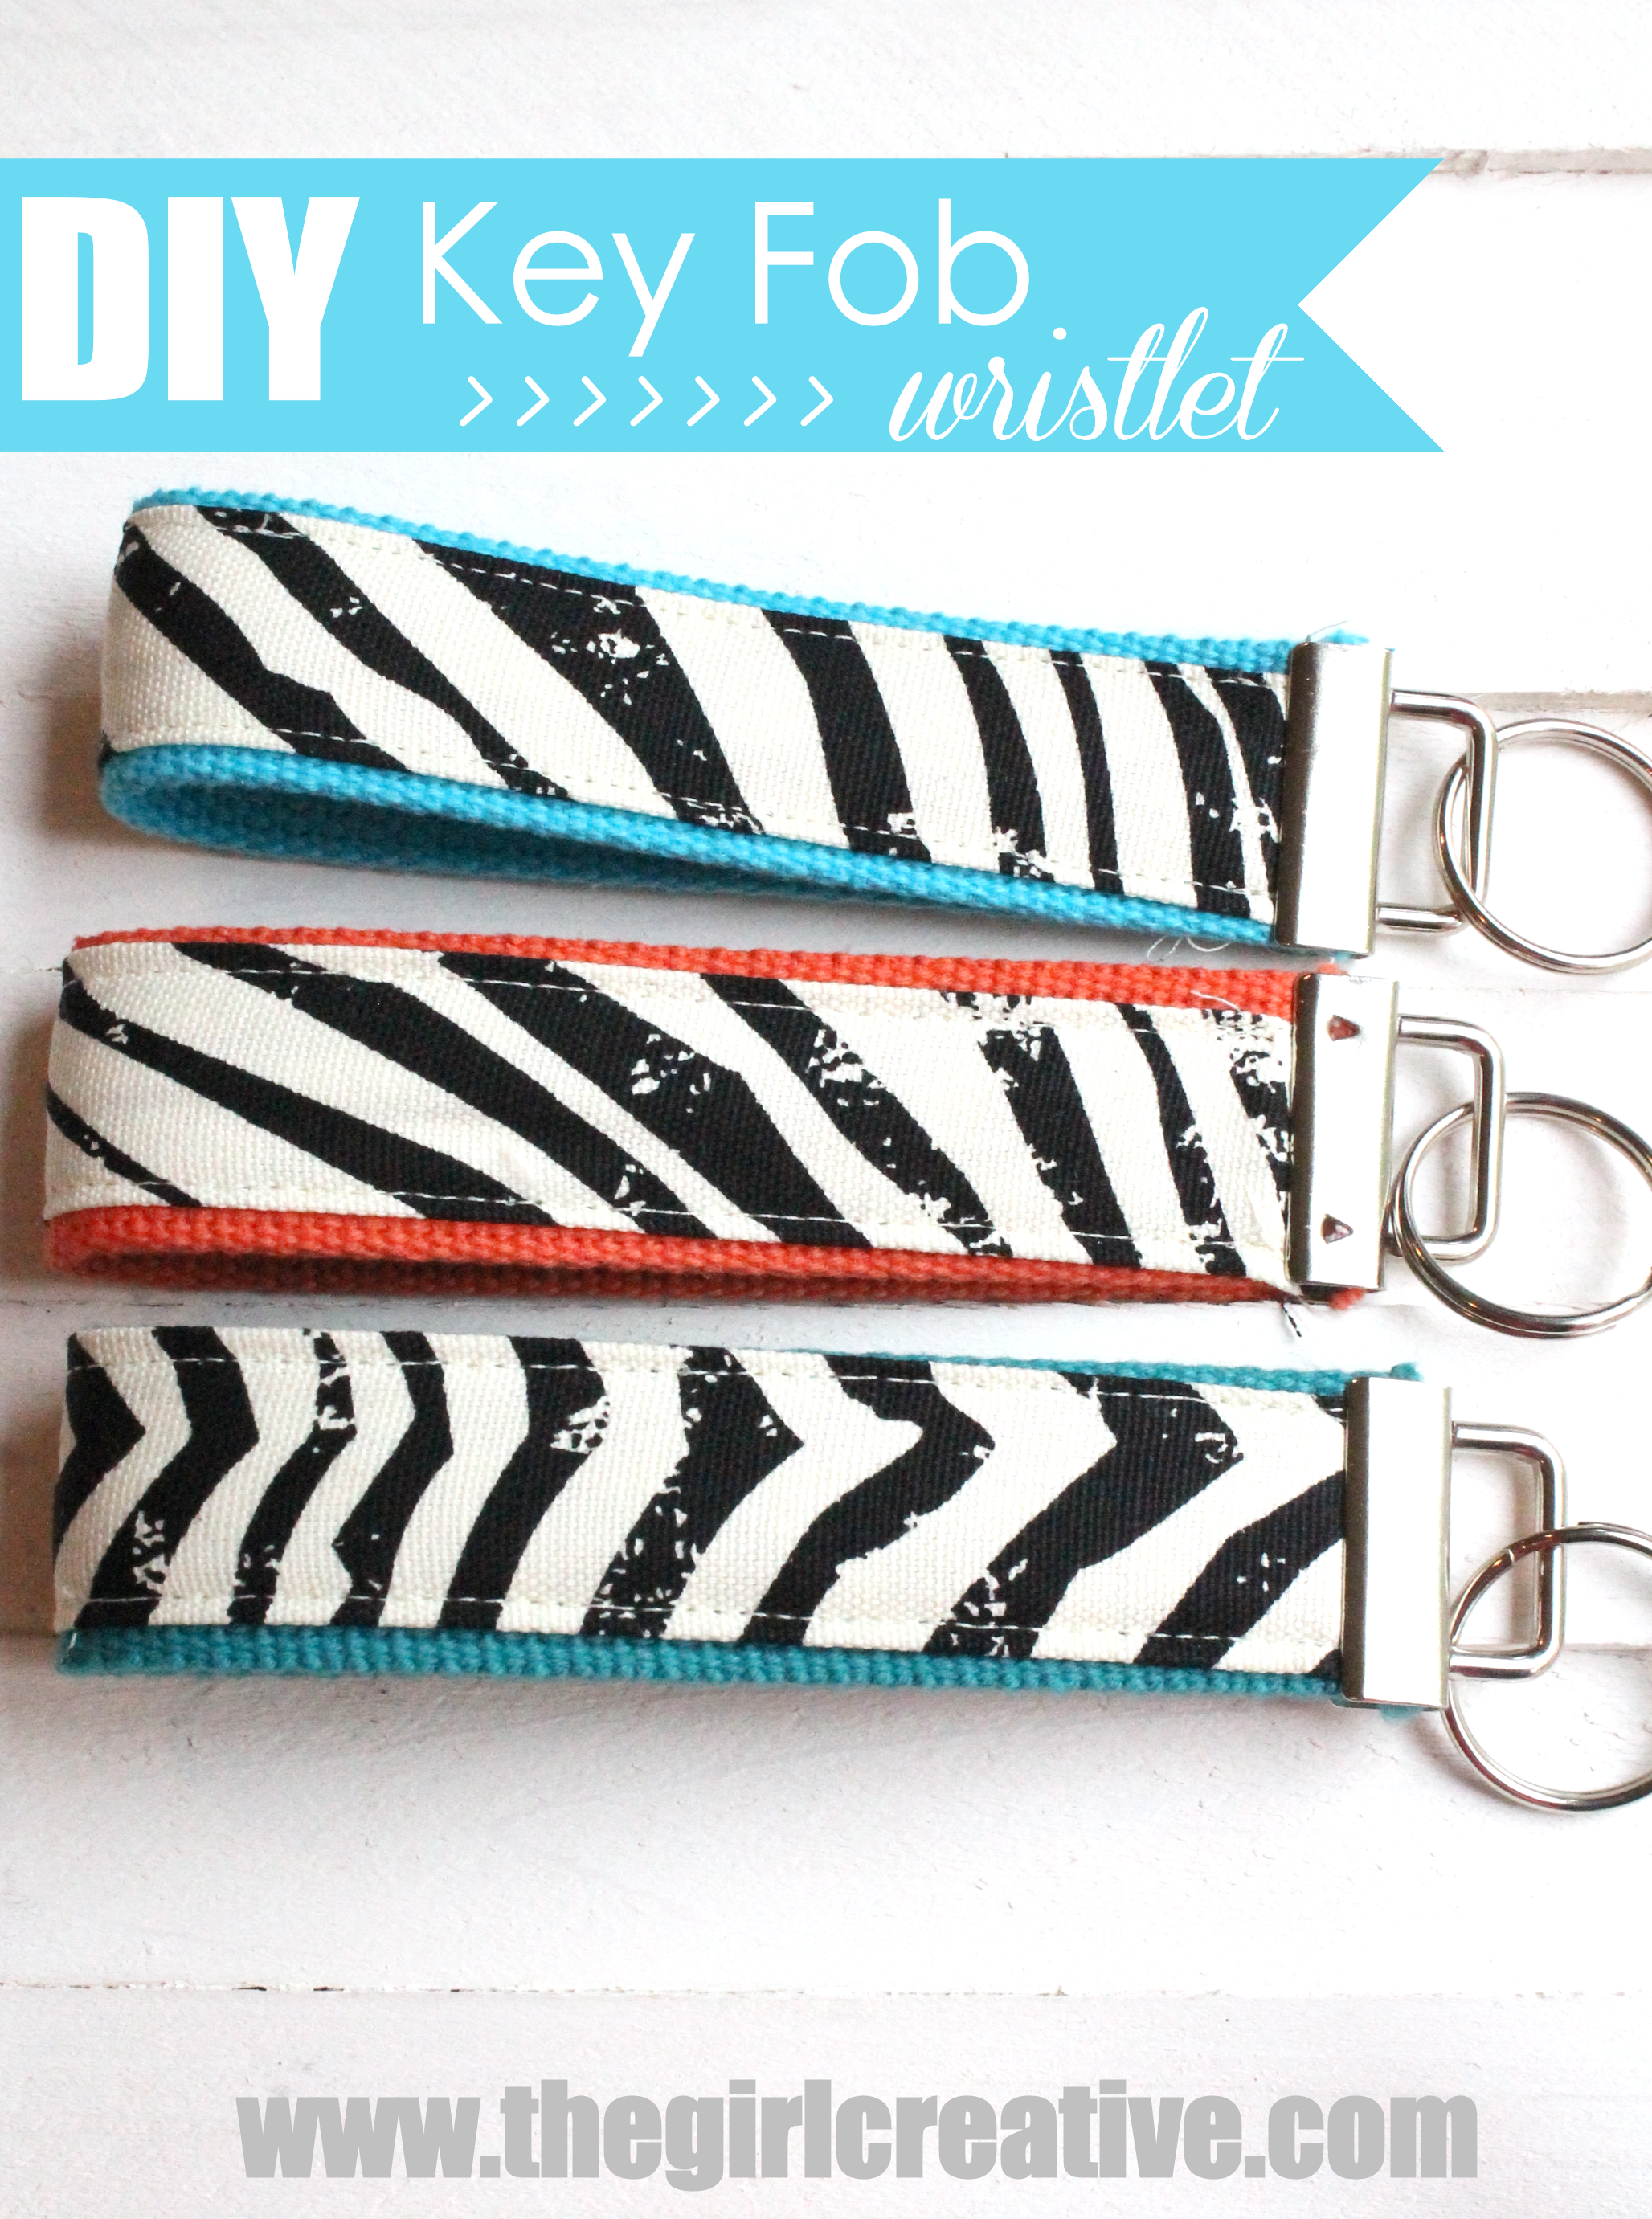 Diy Key Wristlet With Michaels Fabric The Girl Creative